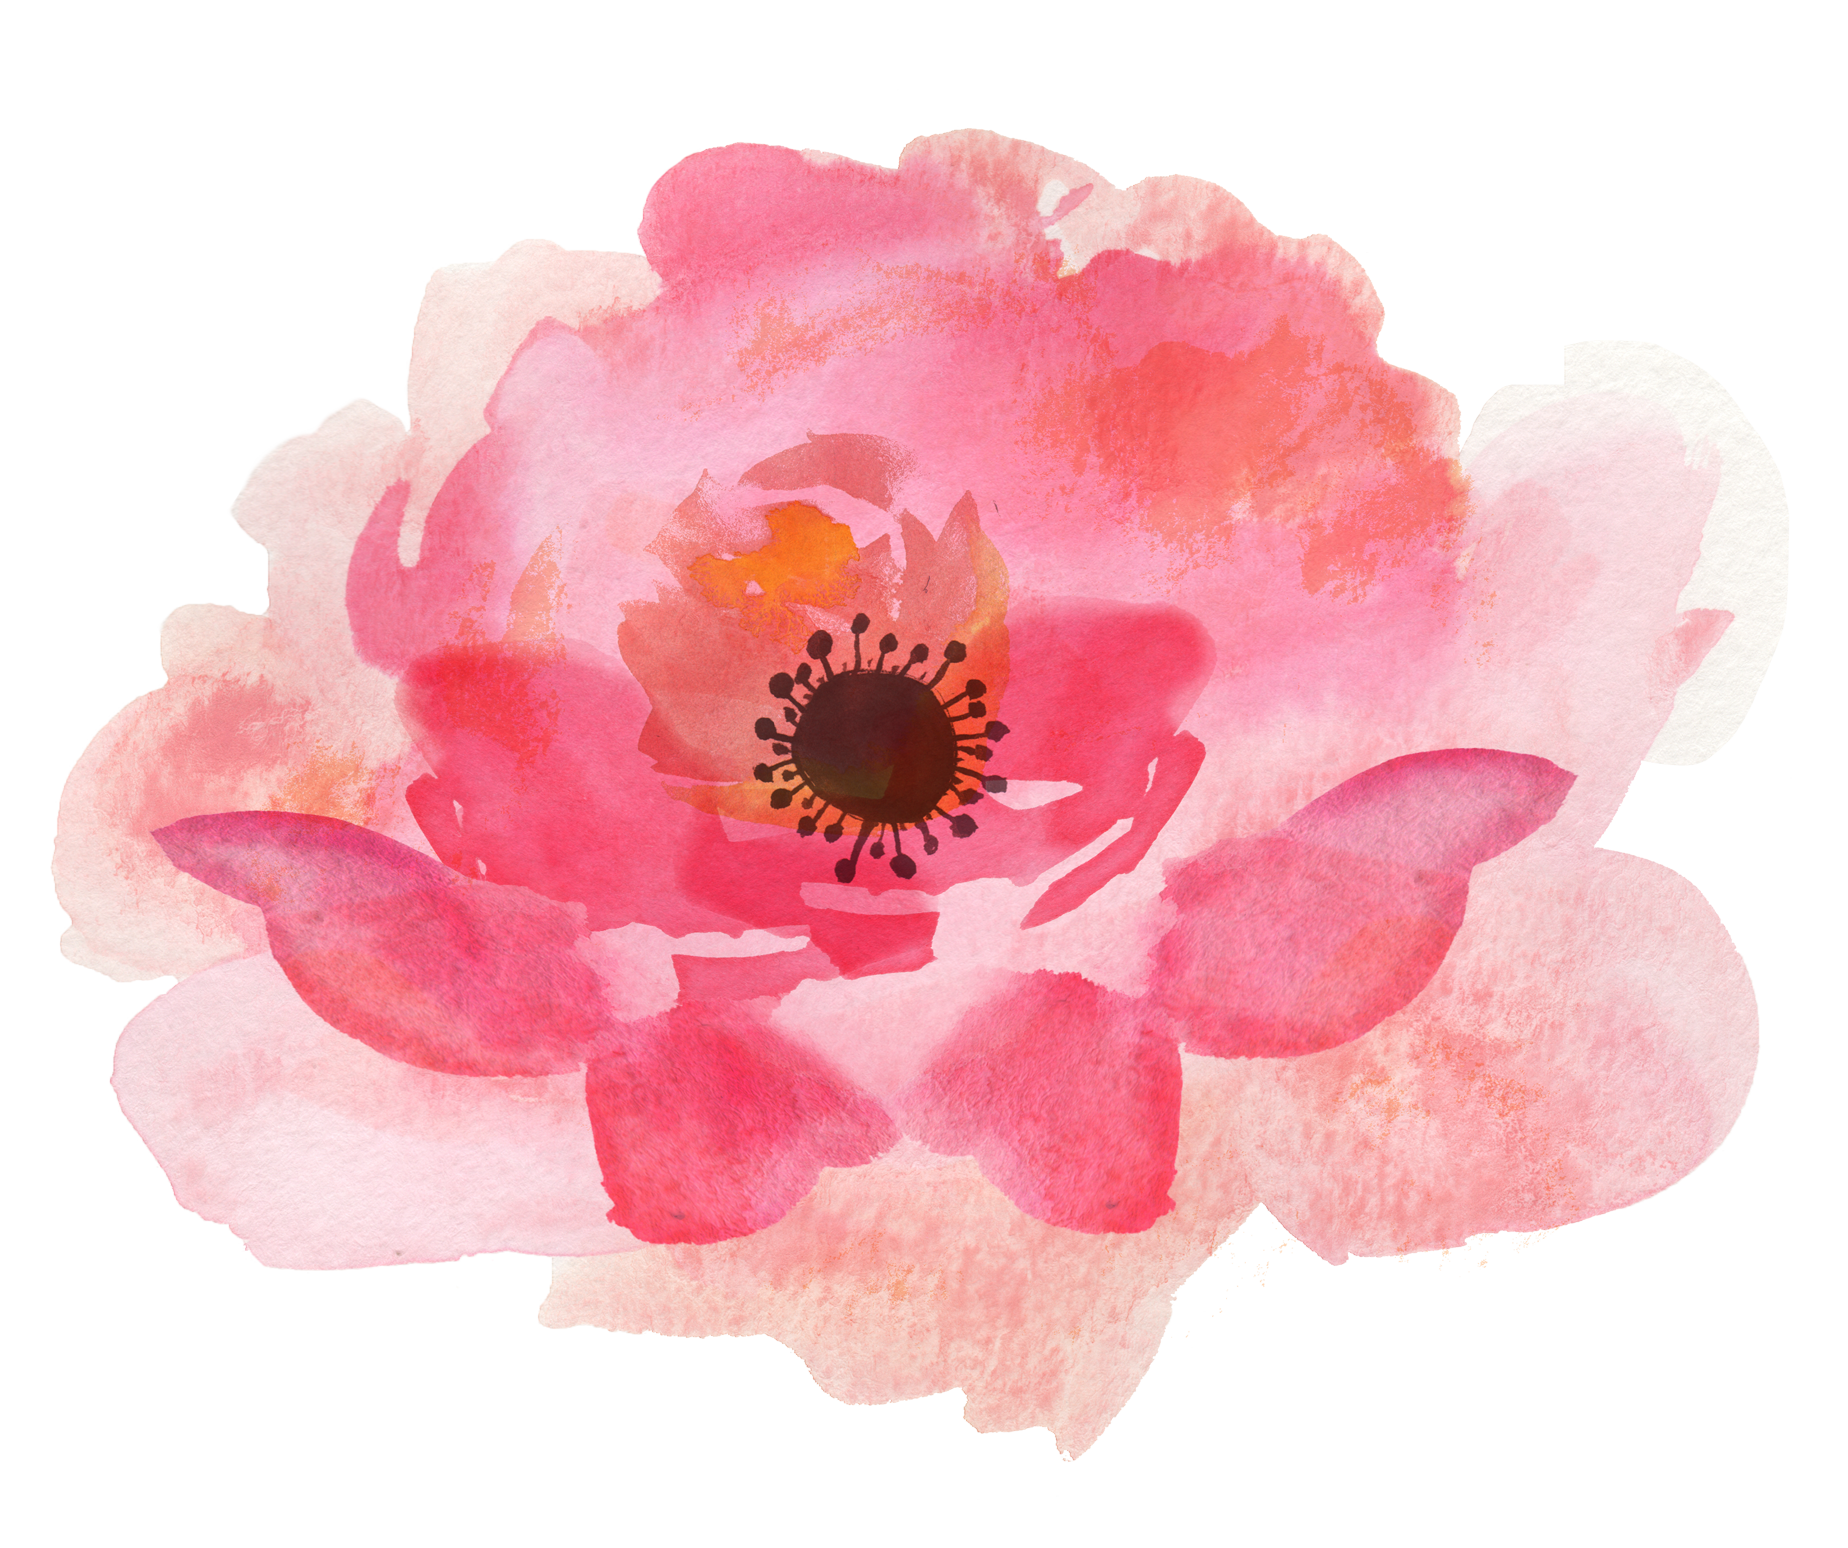 Water color flower png. Pink watercolor flowers high